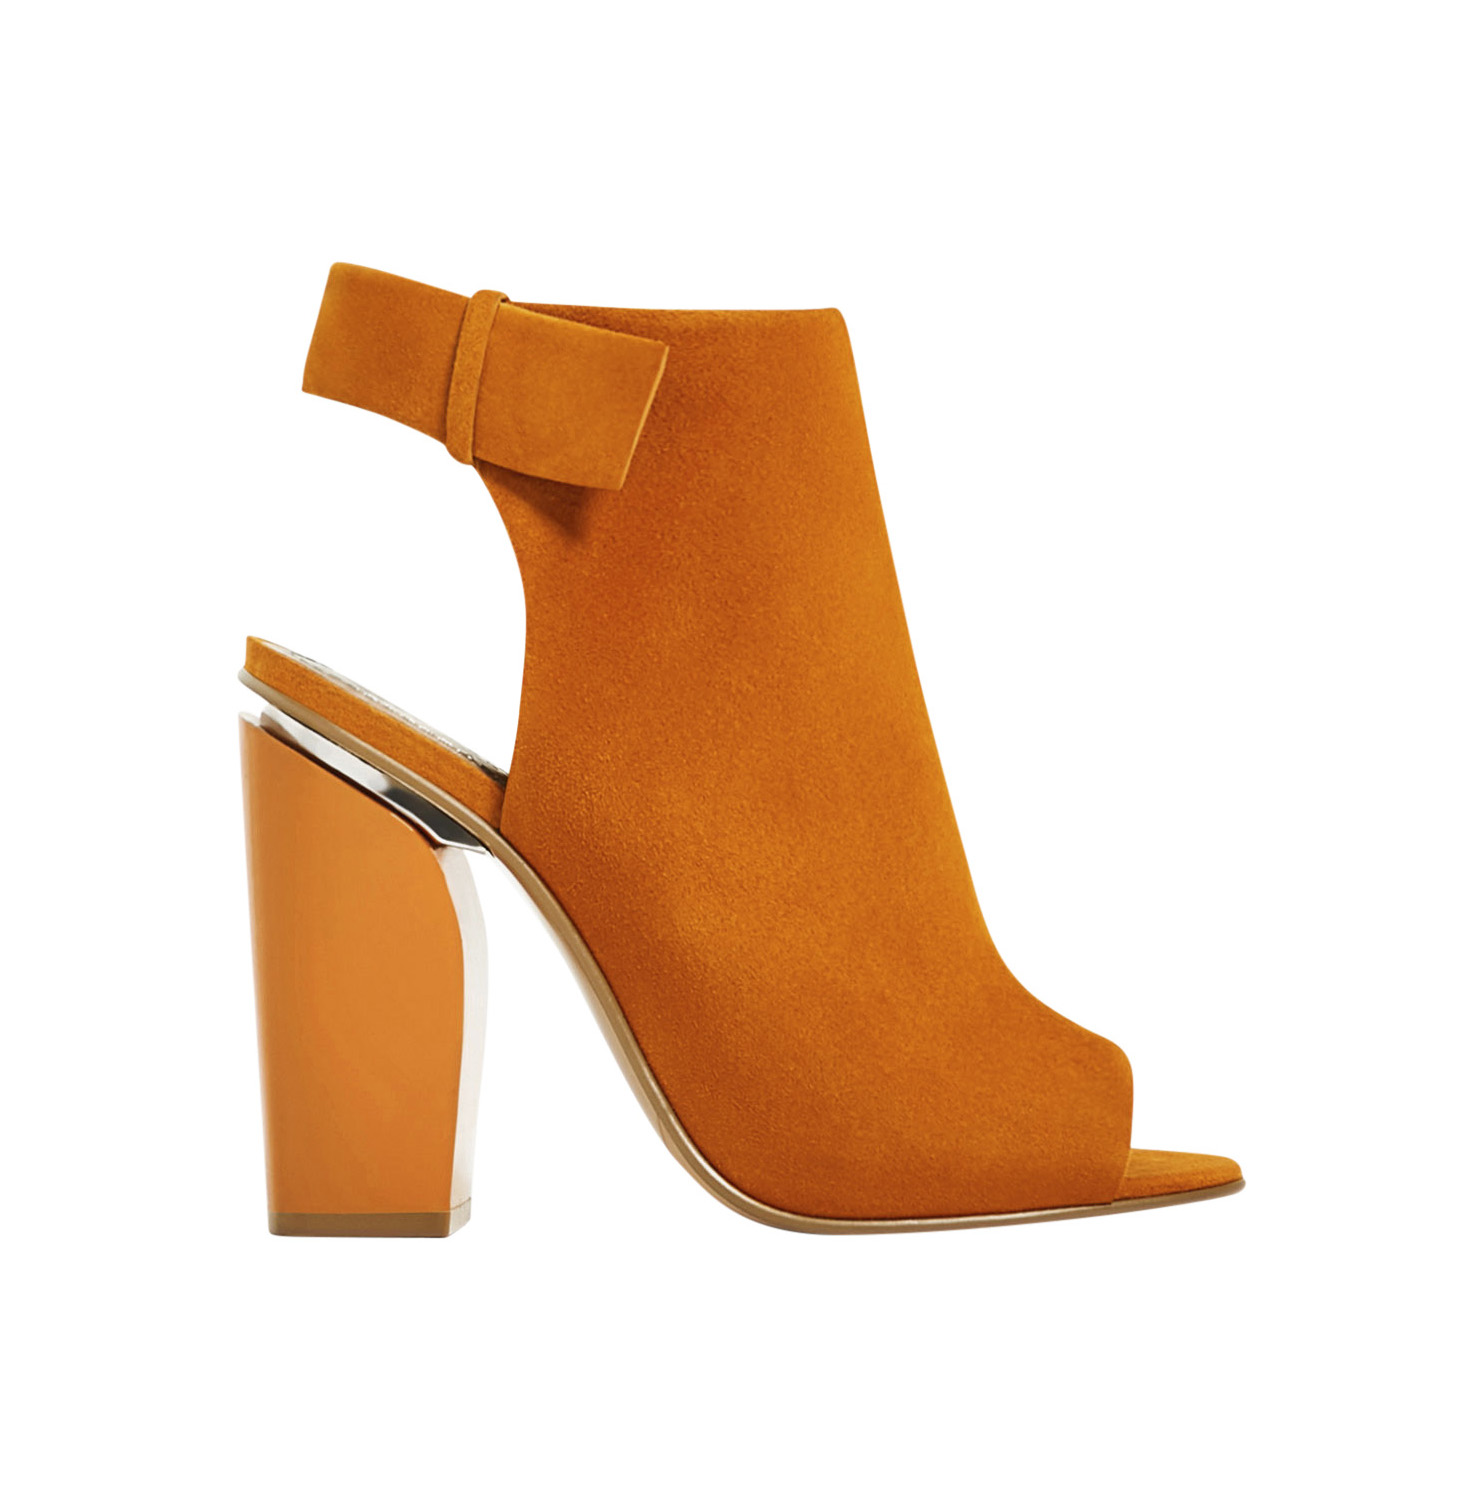 Zara Slingback Leather Ankle Boots